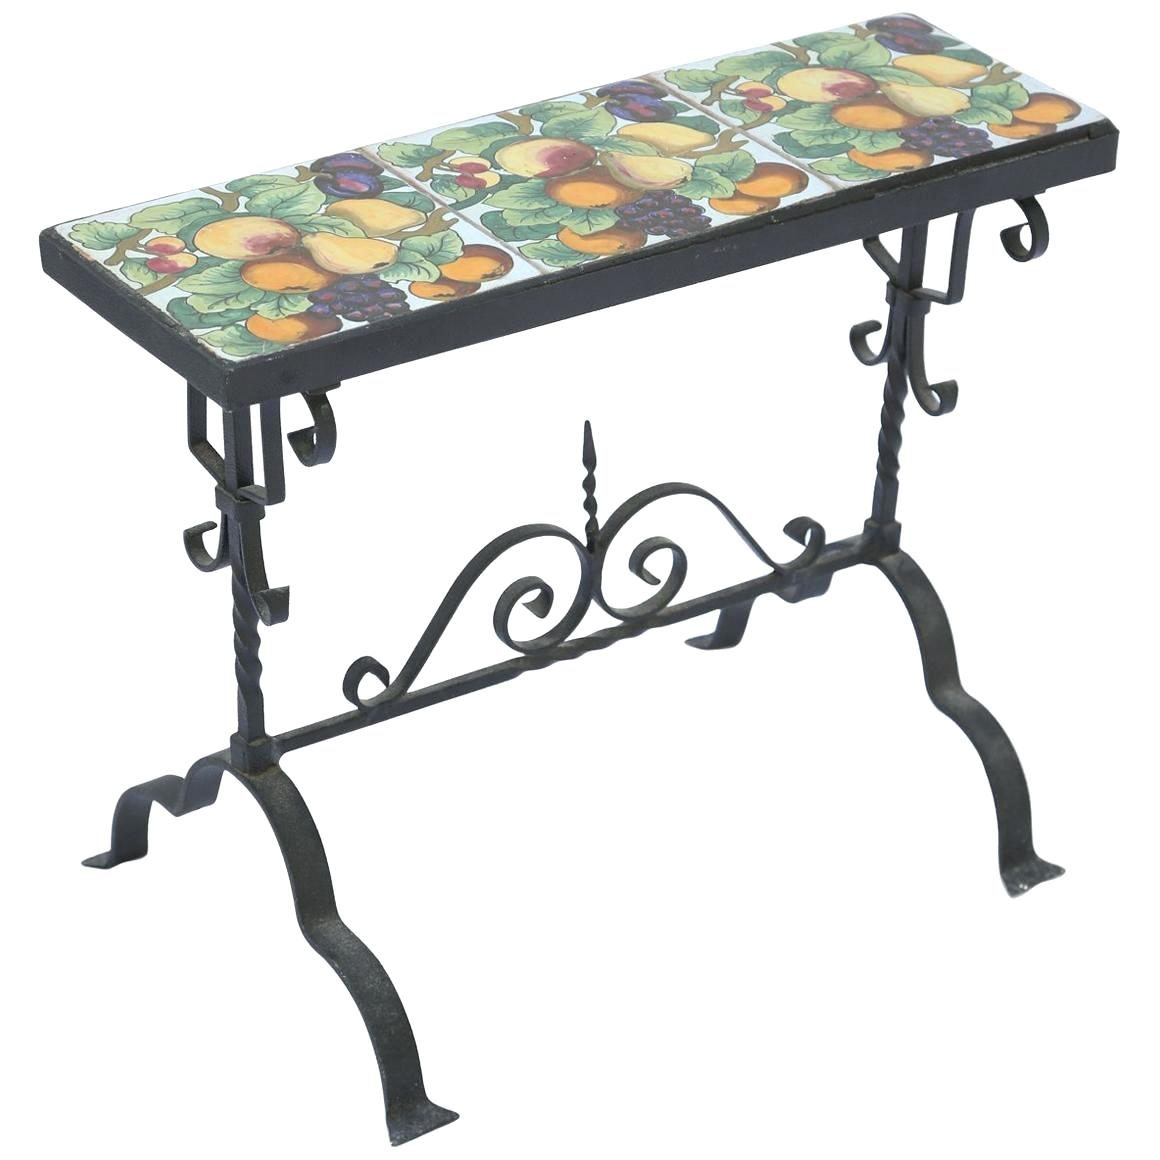 iron accent table bronze cactus vupad tile top ocean wave mosaic black outdoor wicker coffee with glass headboards and white linens target kitchen ginger jar lamps pier one